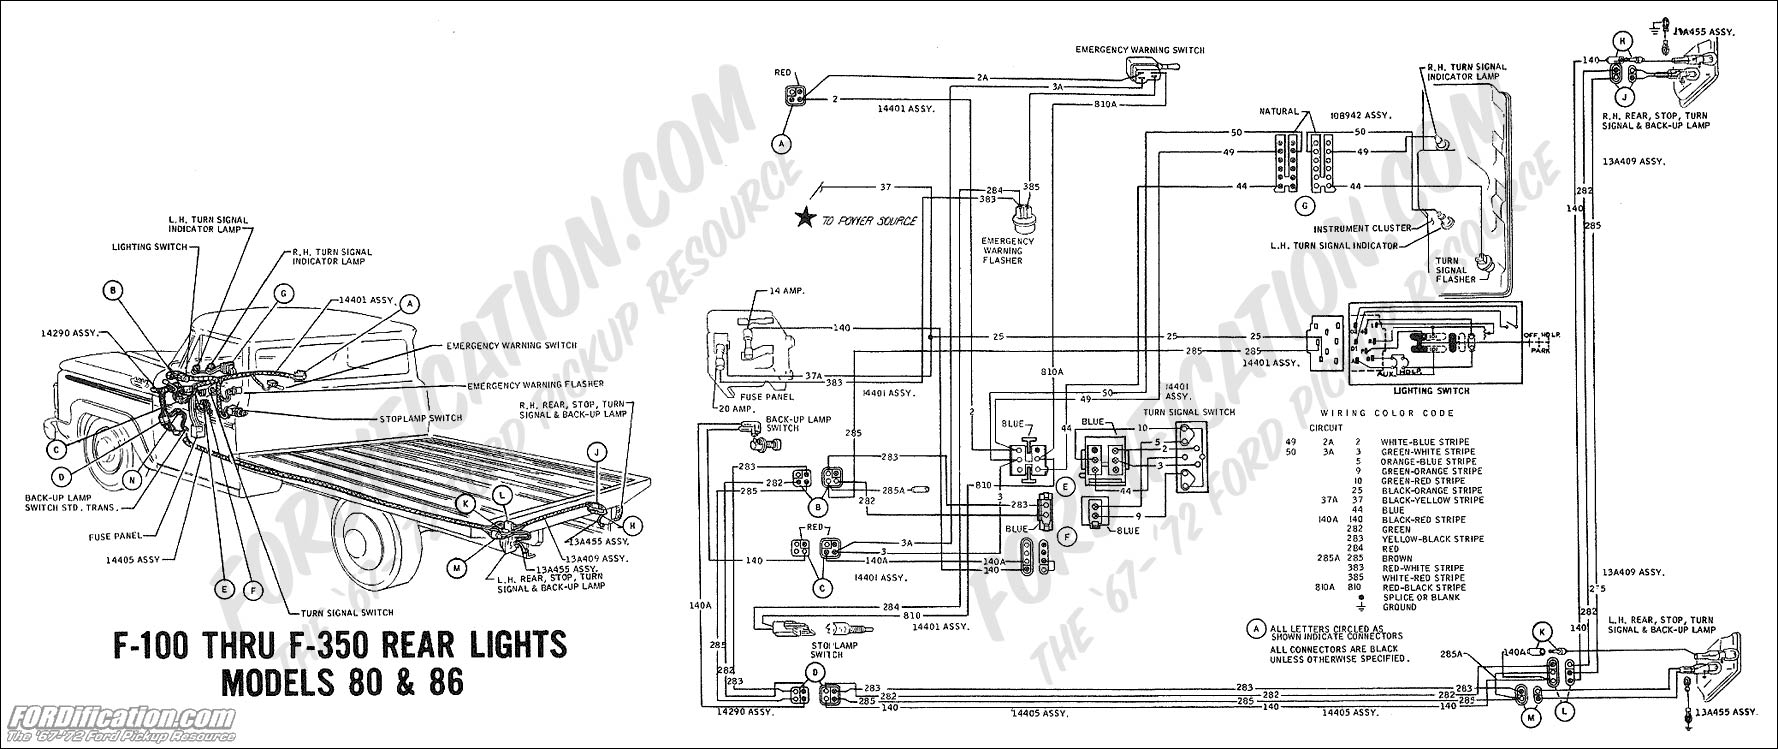 83 ford f100 wiring diagram wiring diagramwire diagram for 1983 ford f 350 wiring diagram addford f350 electrical wiring diagram wiring diagrams